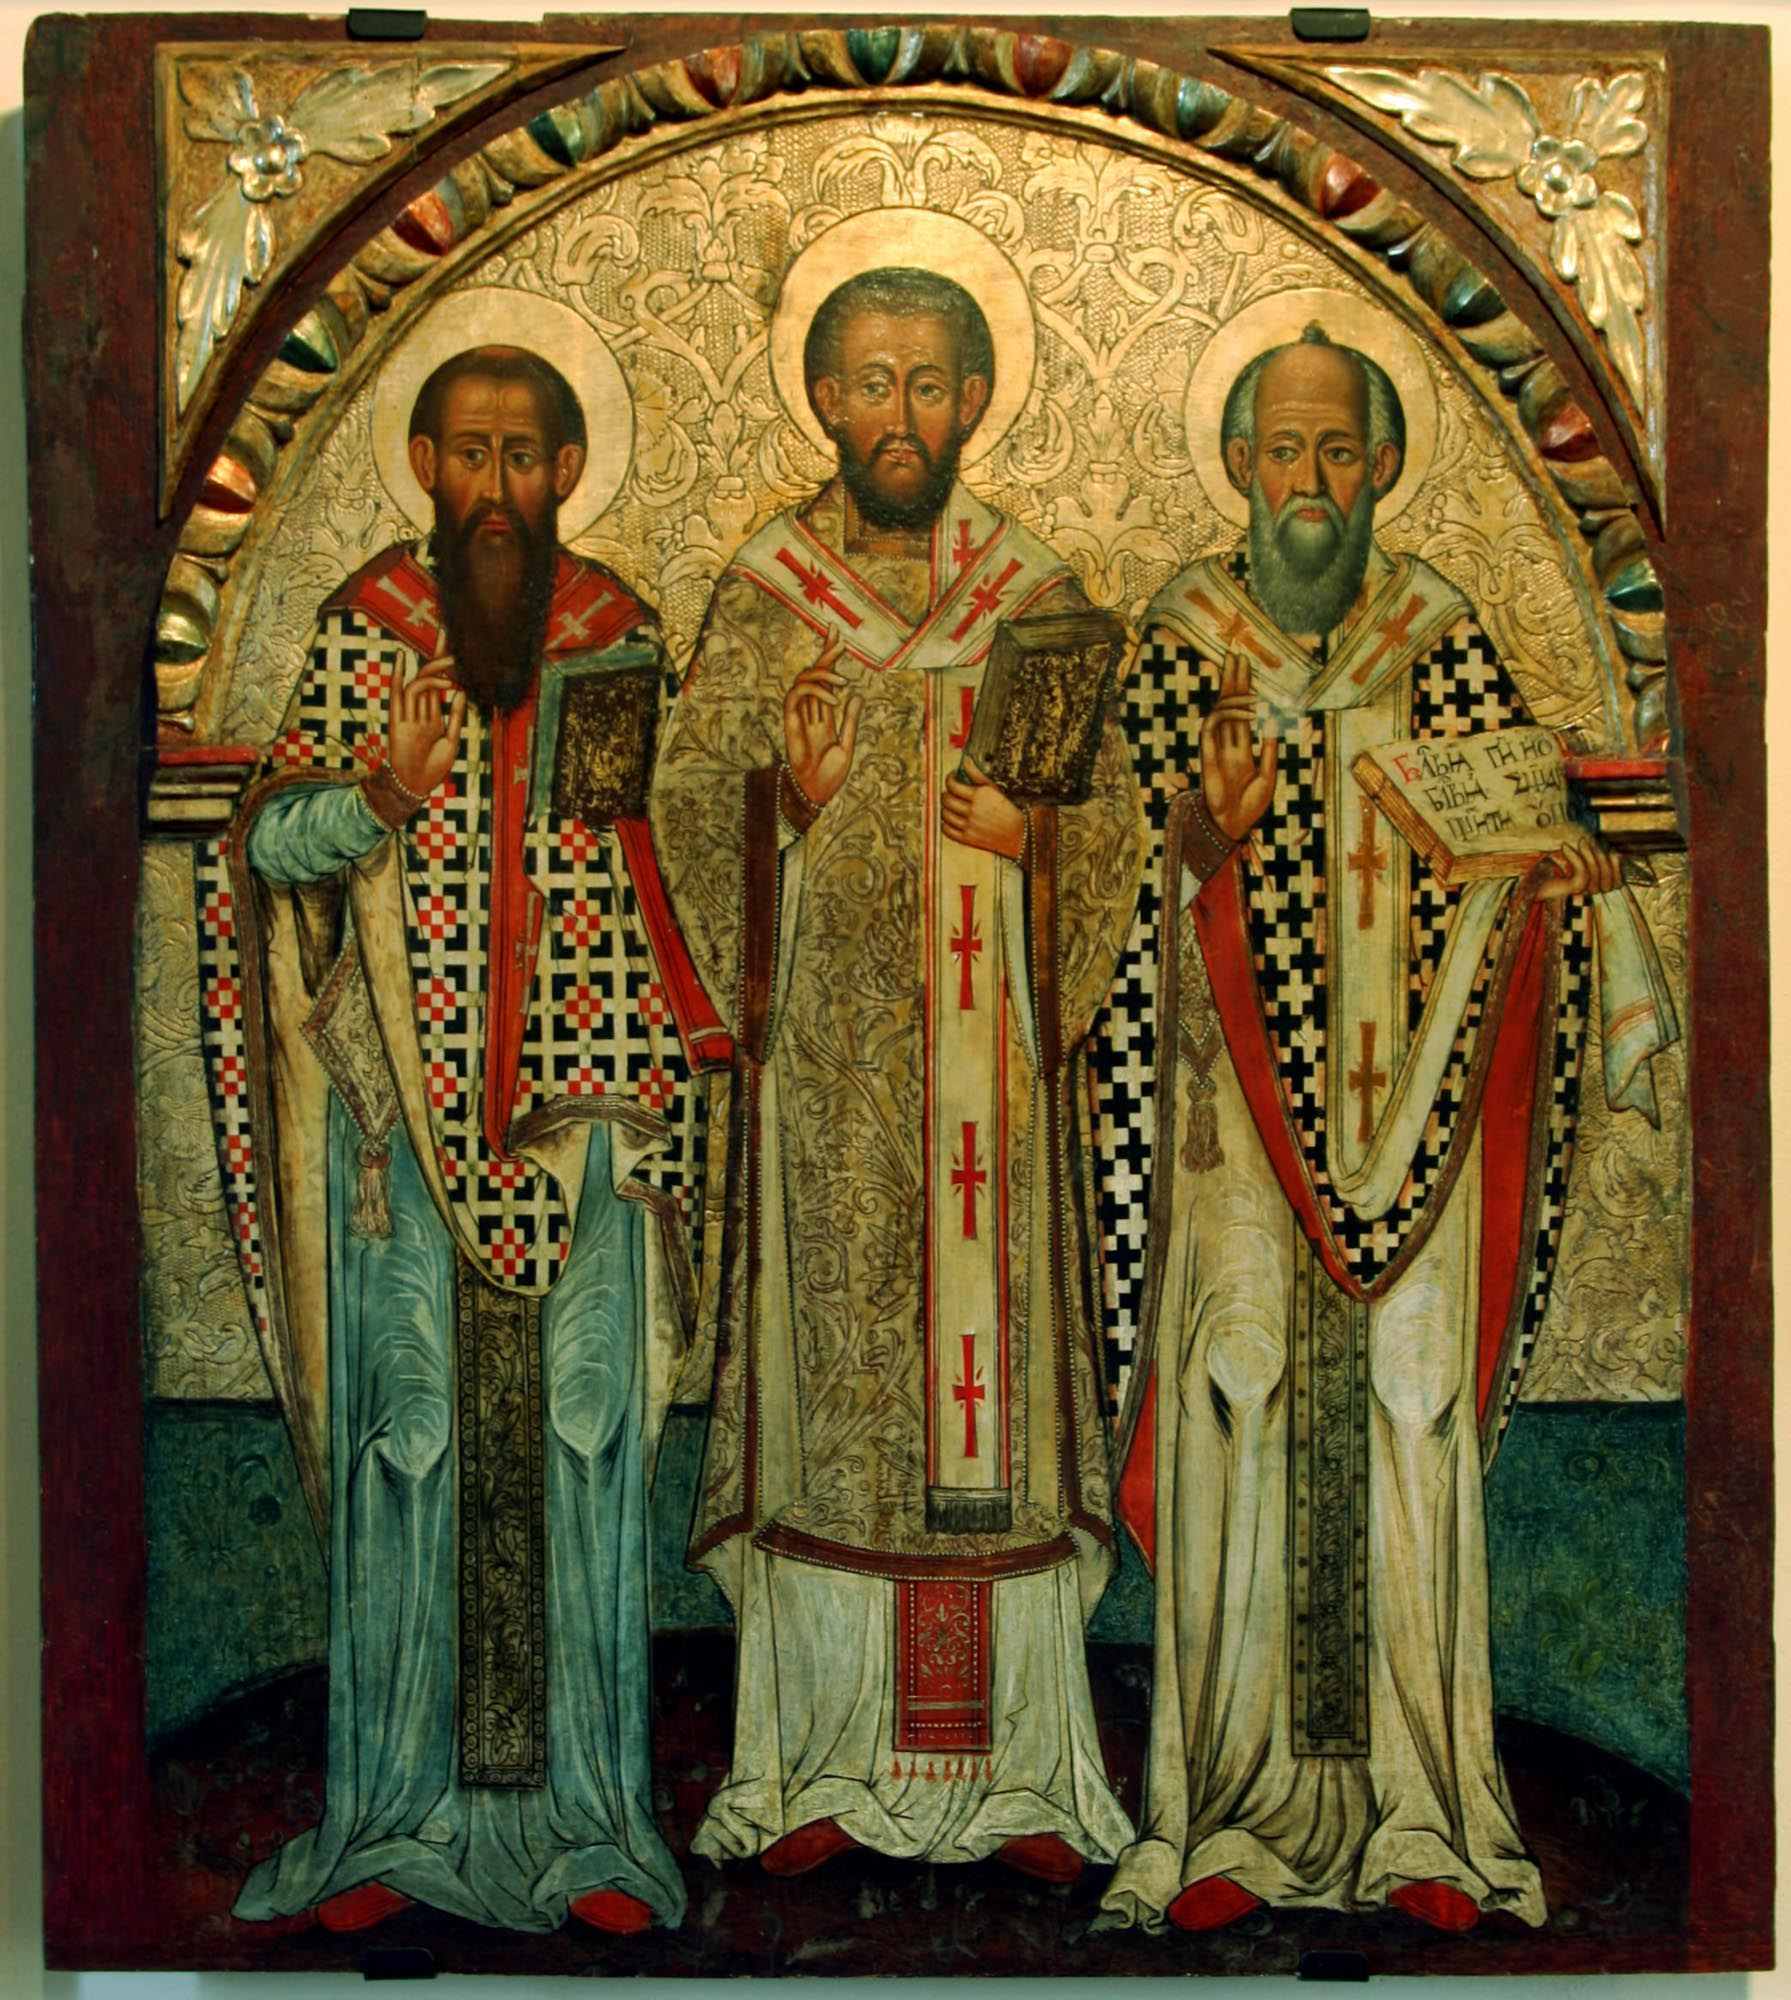 basil the great gregory nazianzen nazianzus cappadocians church fathers january 2 friends friendship